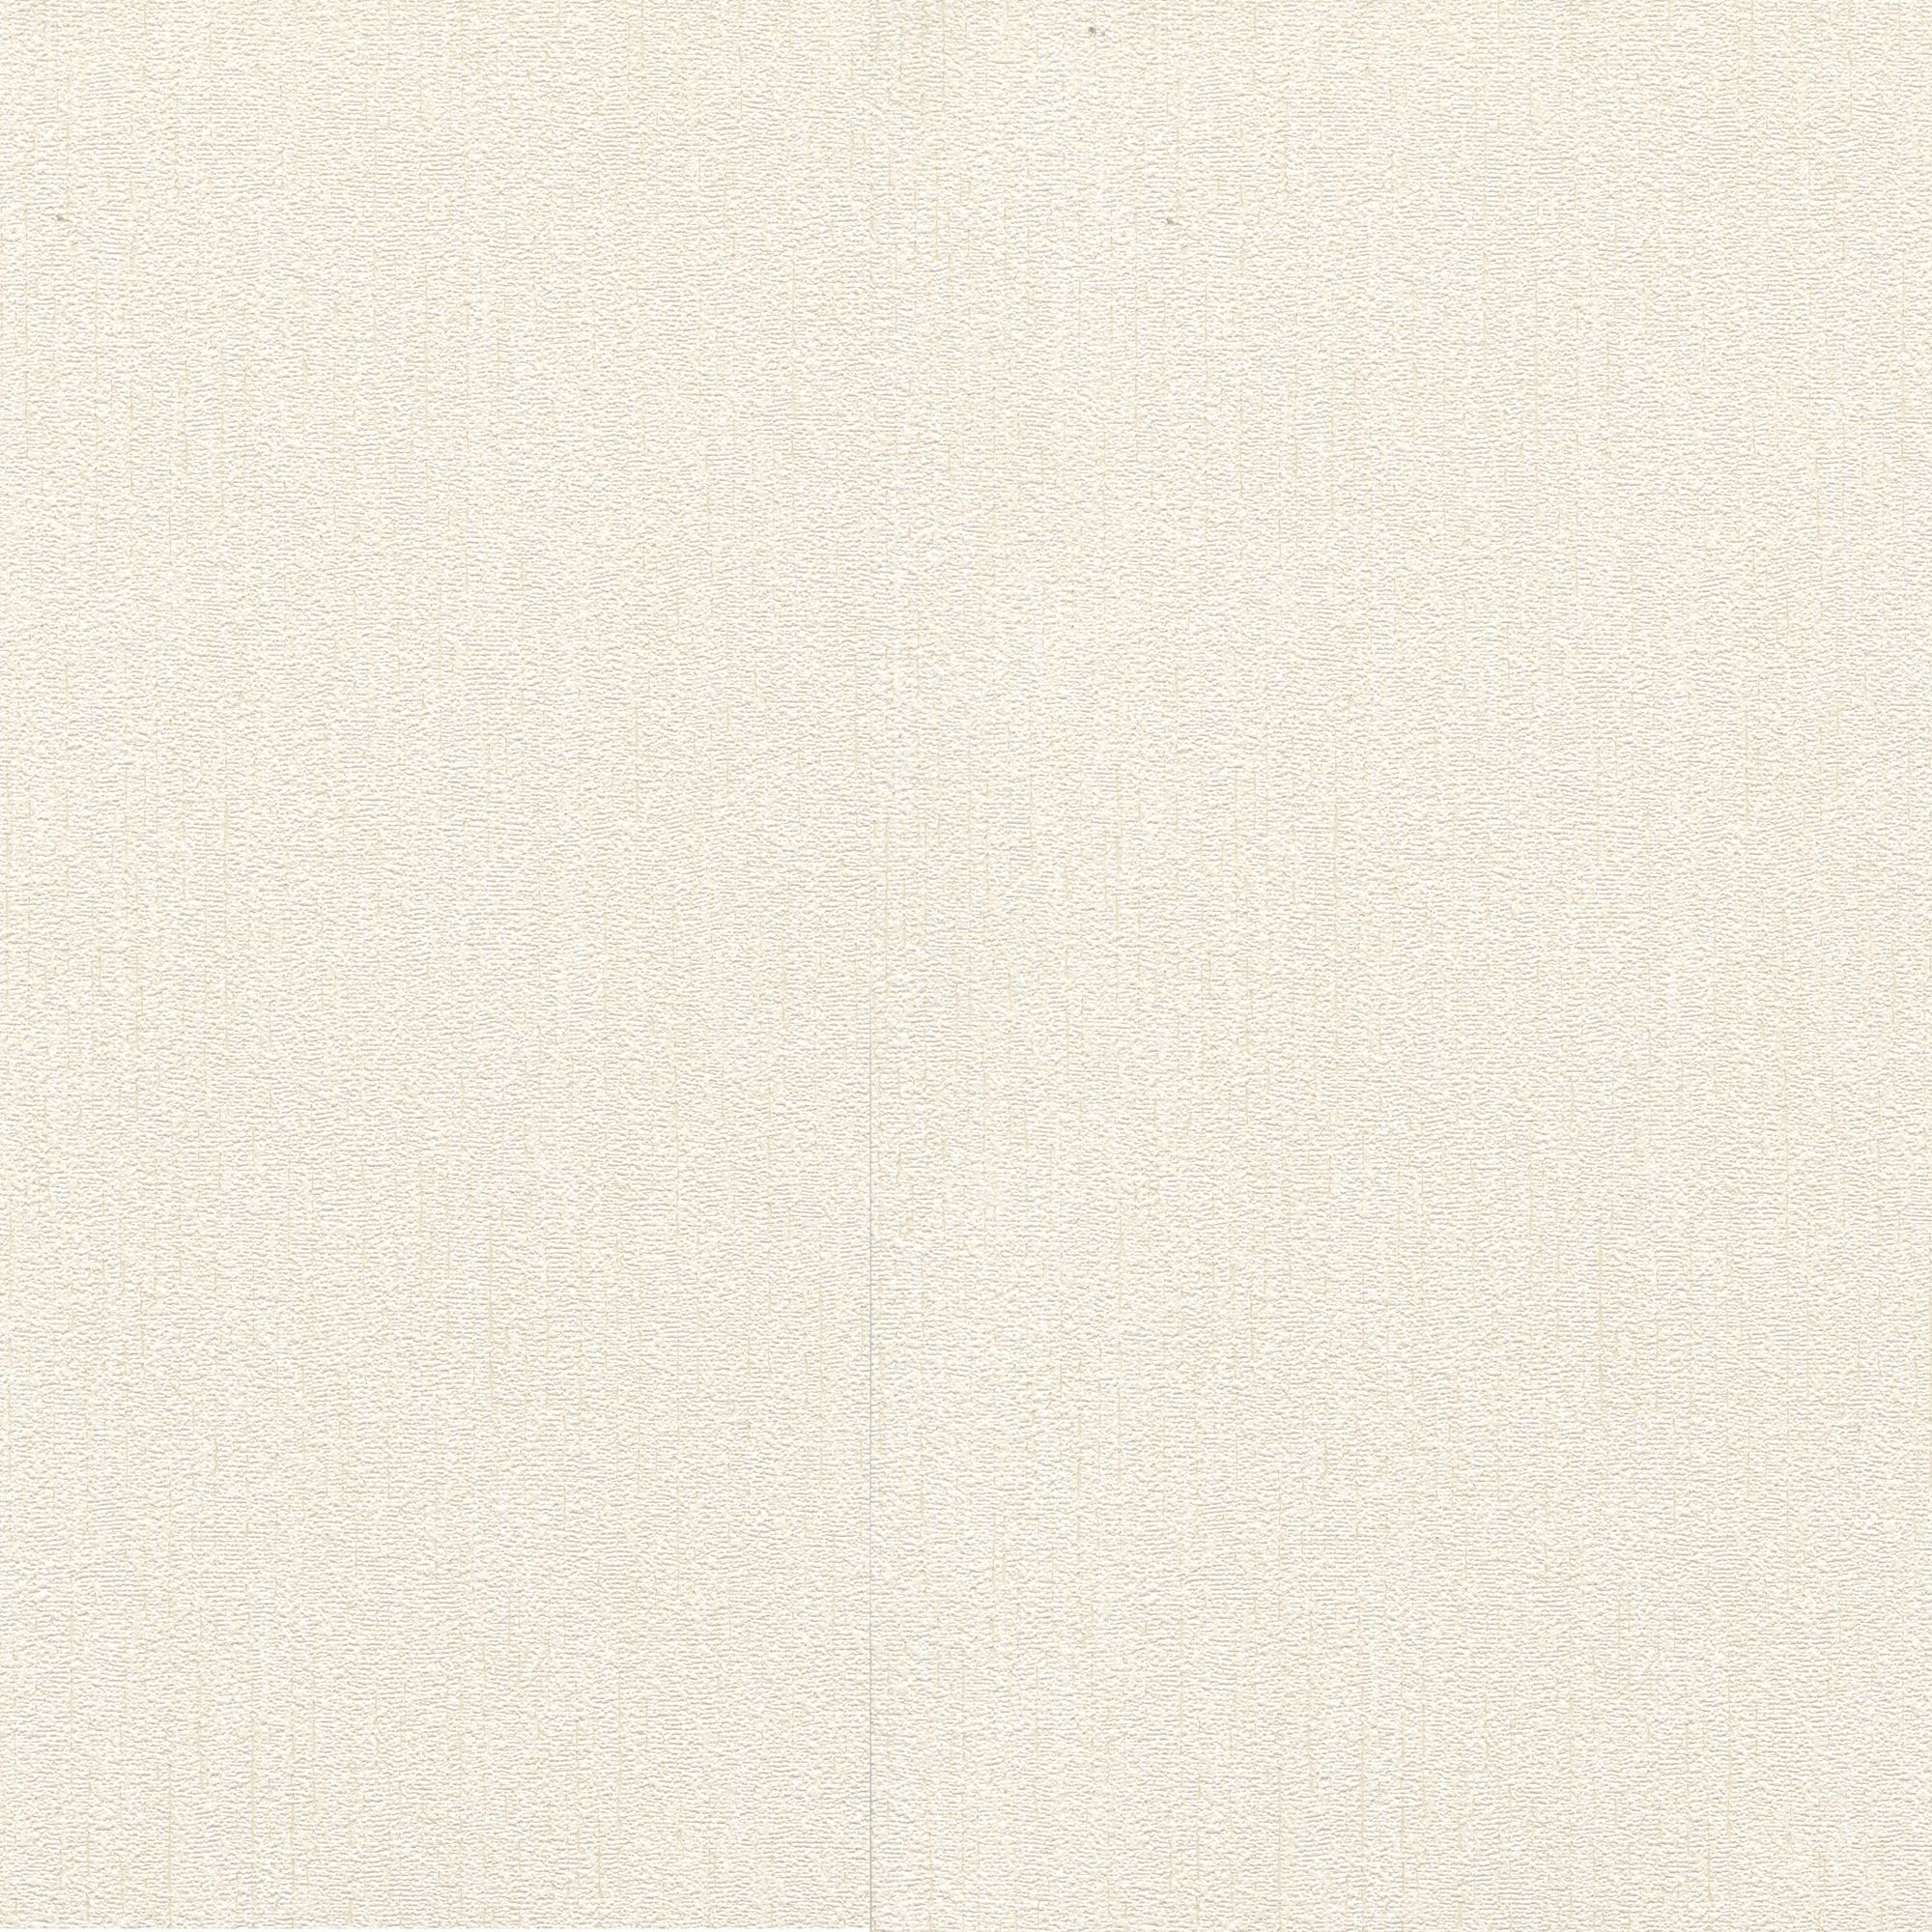 Living walls academy cream plain textured wallpaper Plain white wallpaper for walls